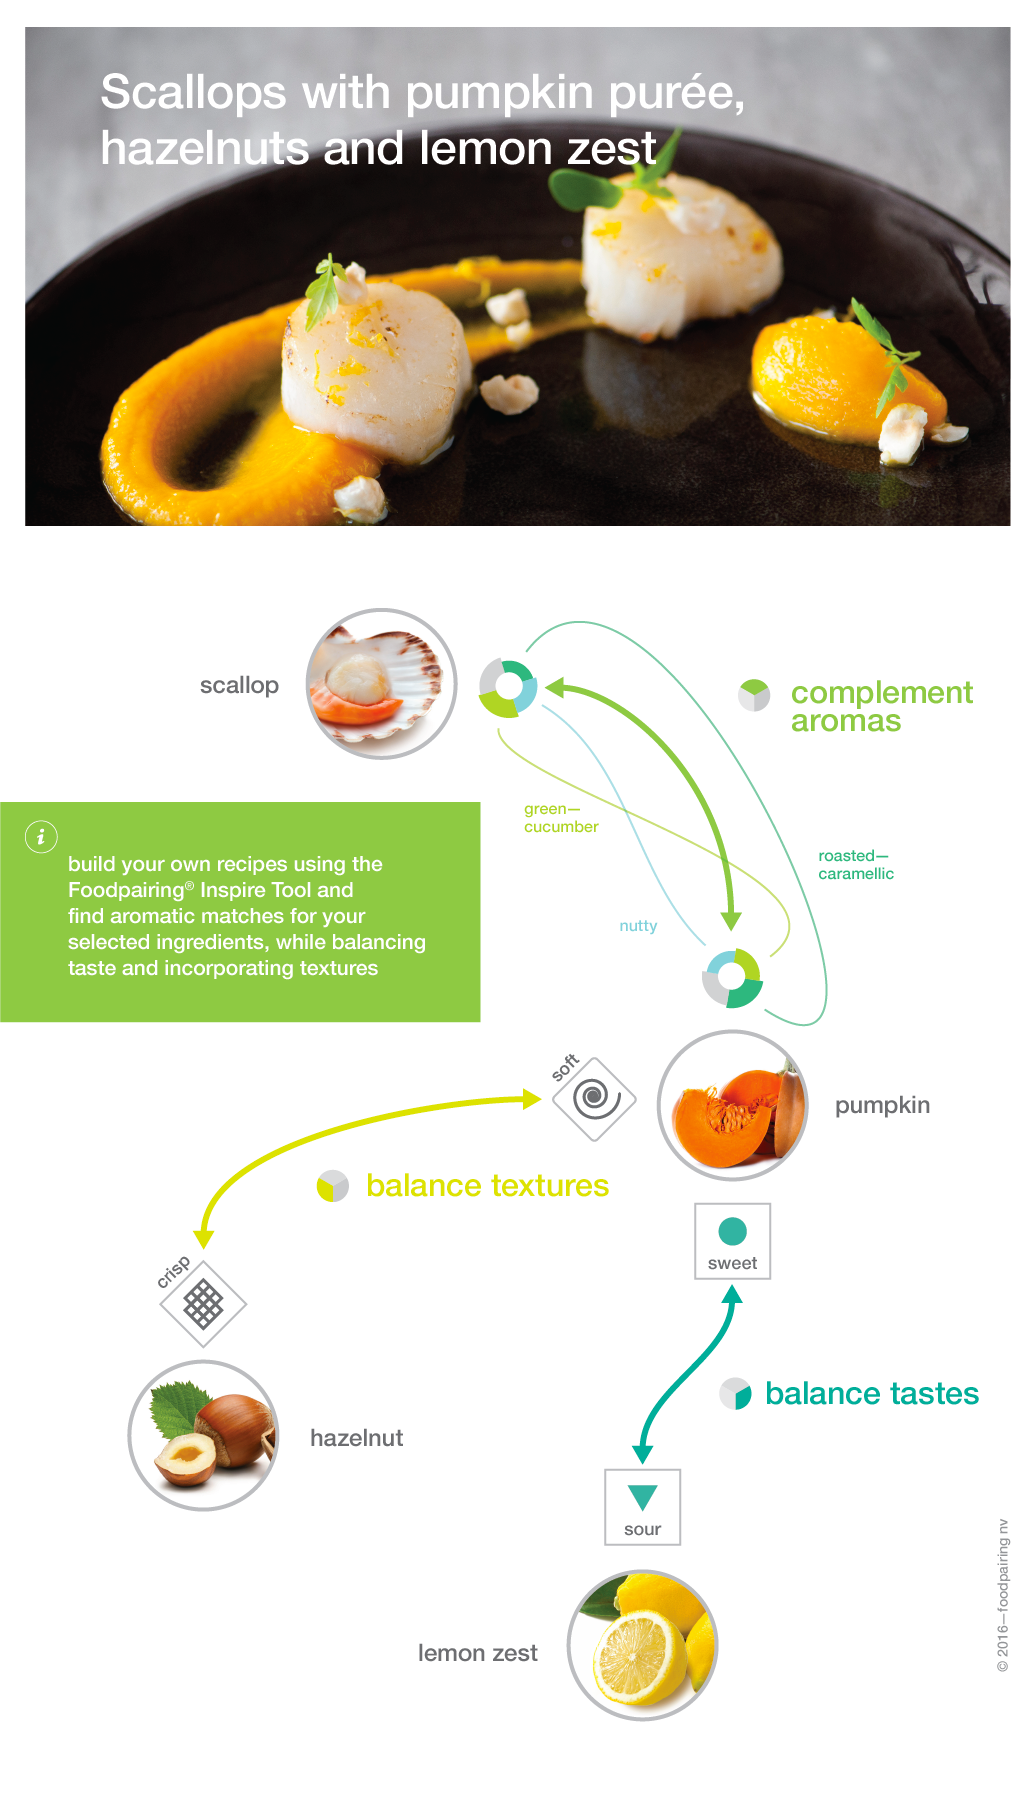 aromas, tastes, textures dimensions of a recipe—Foodpairing